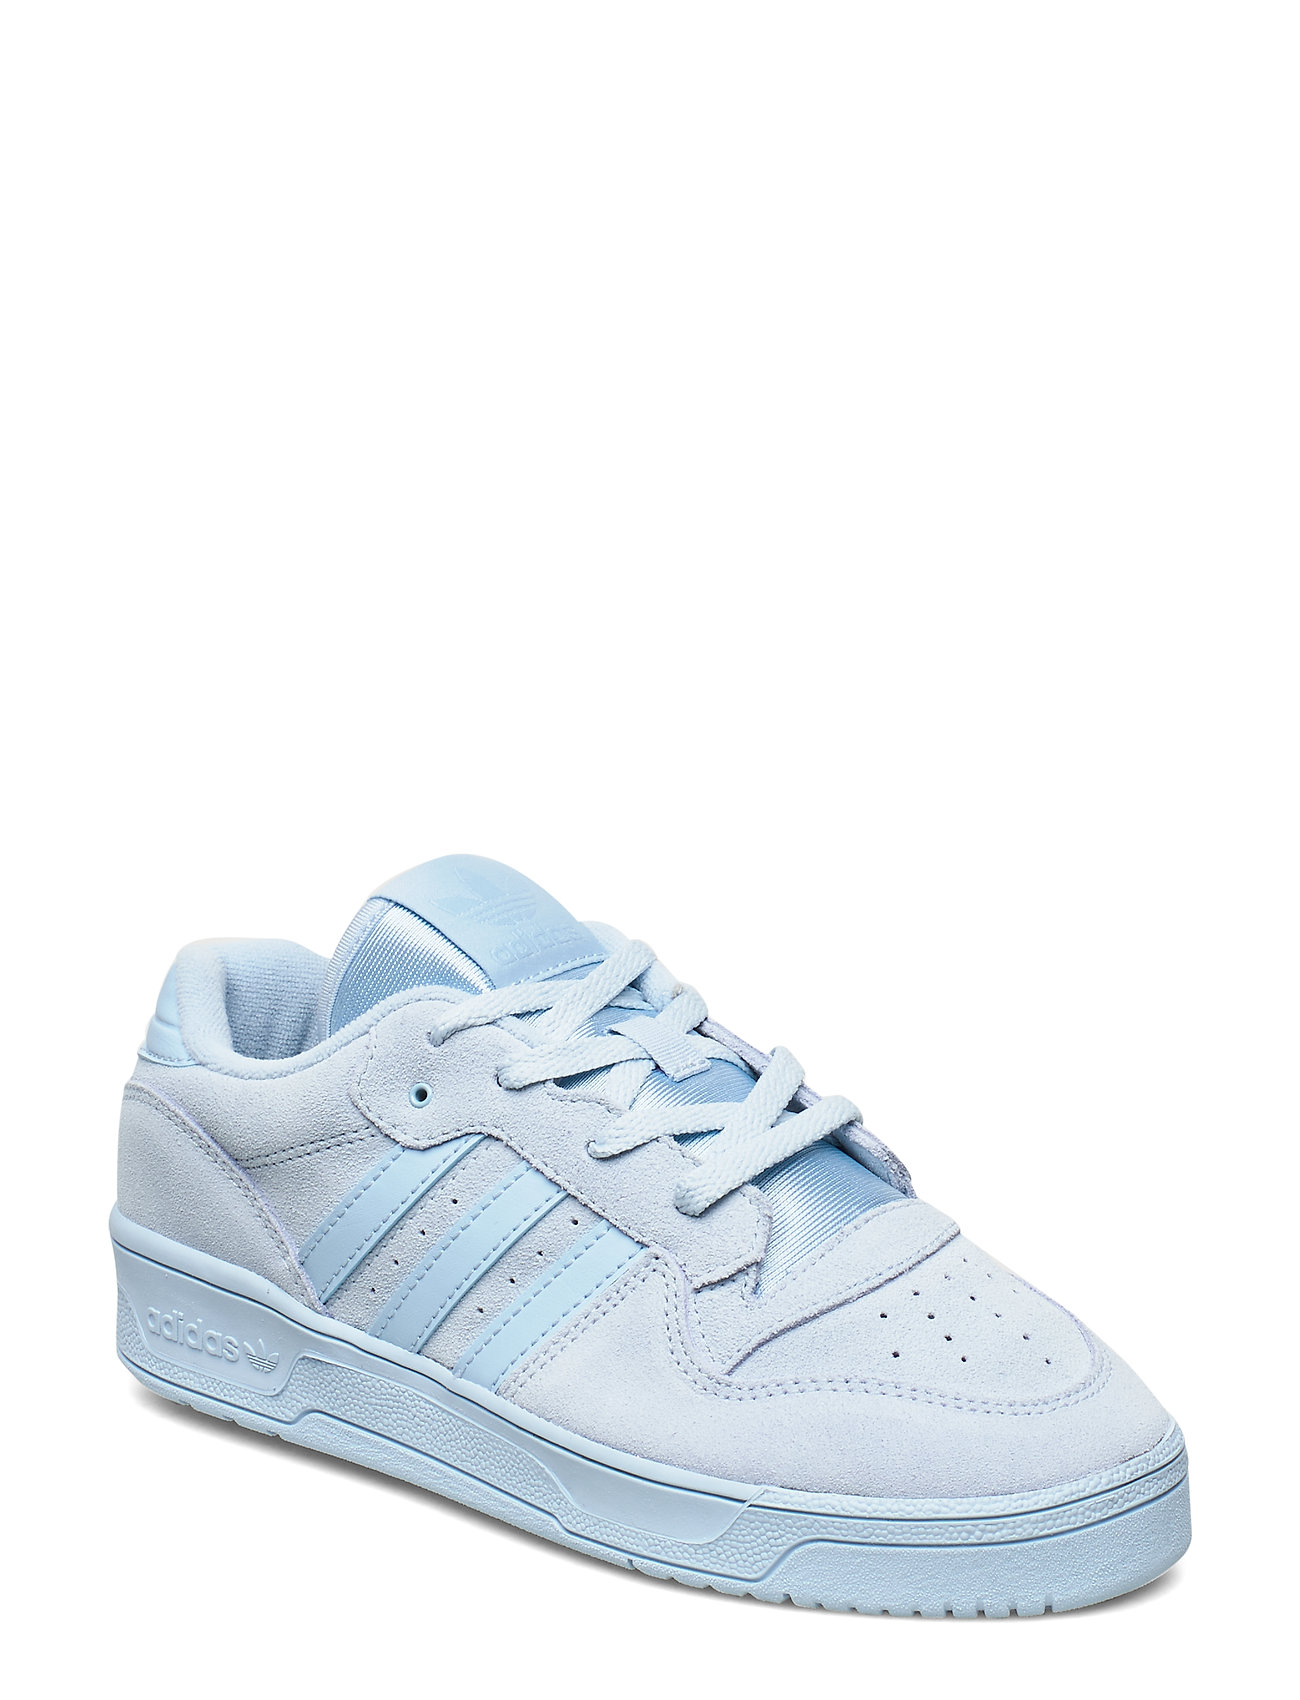 adidas Originals RIVALRY LOW C - CLESKY/CLESKY/FTWWHT